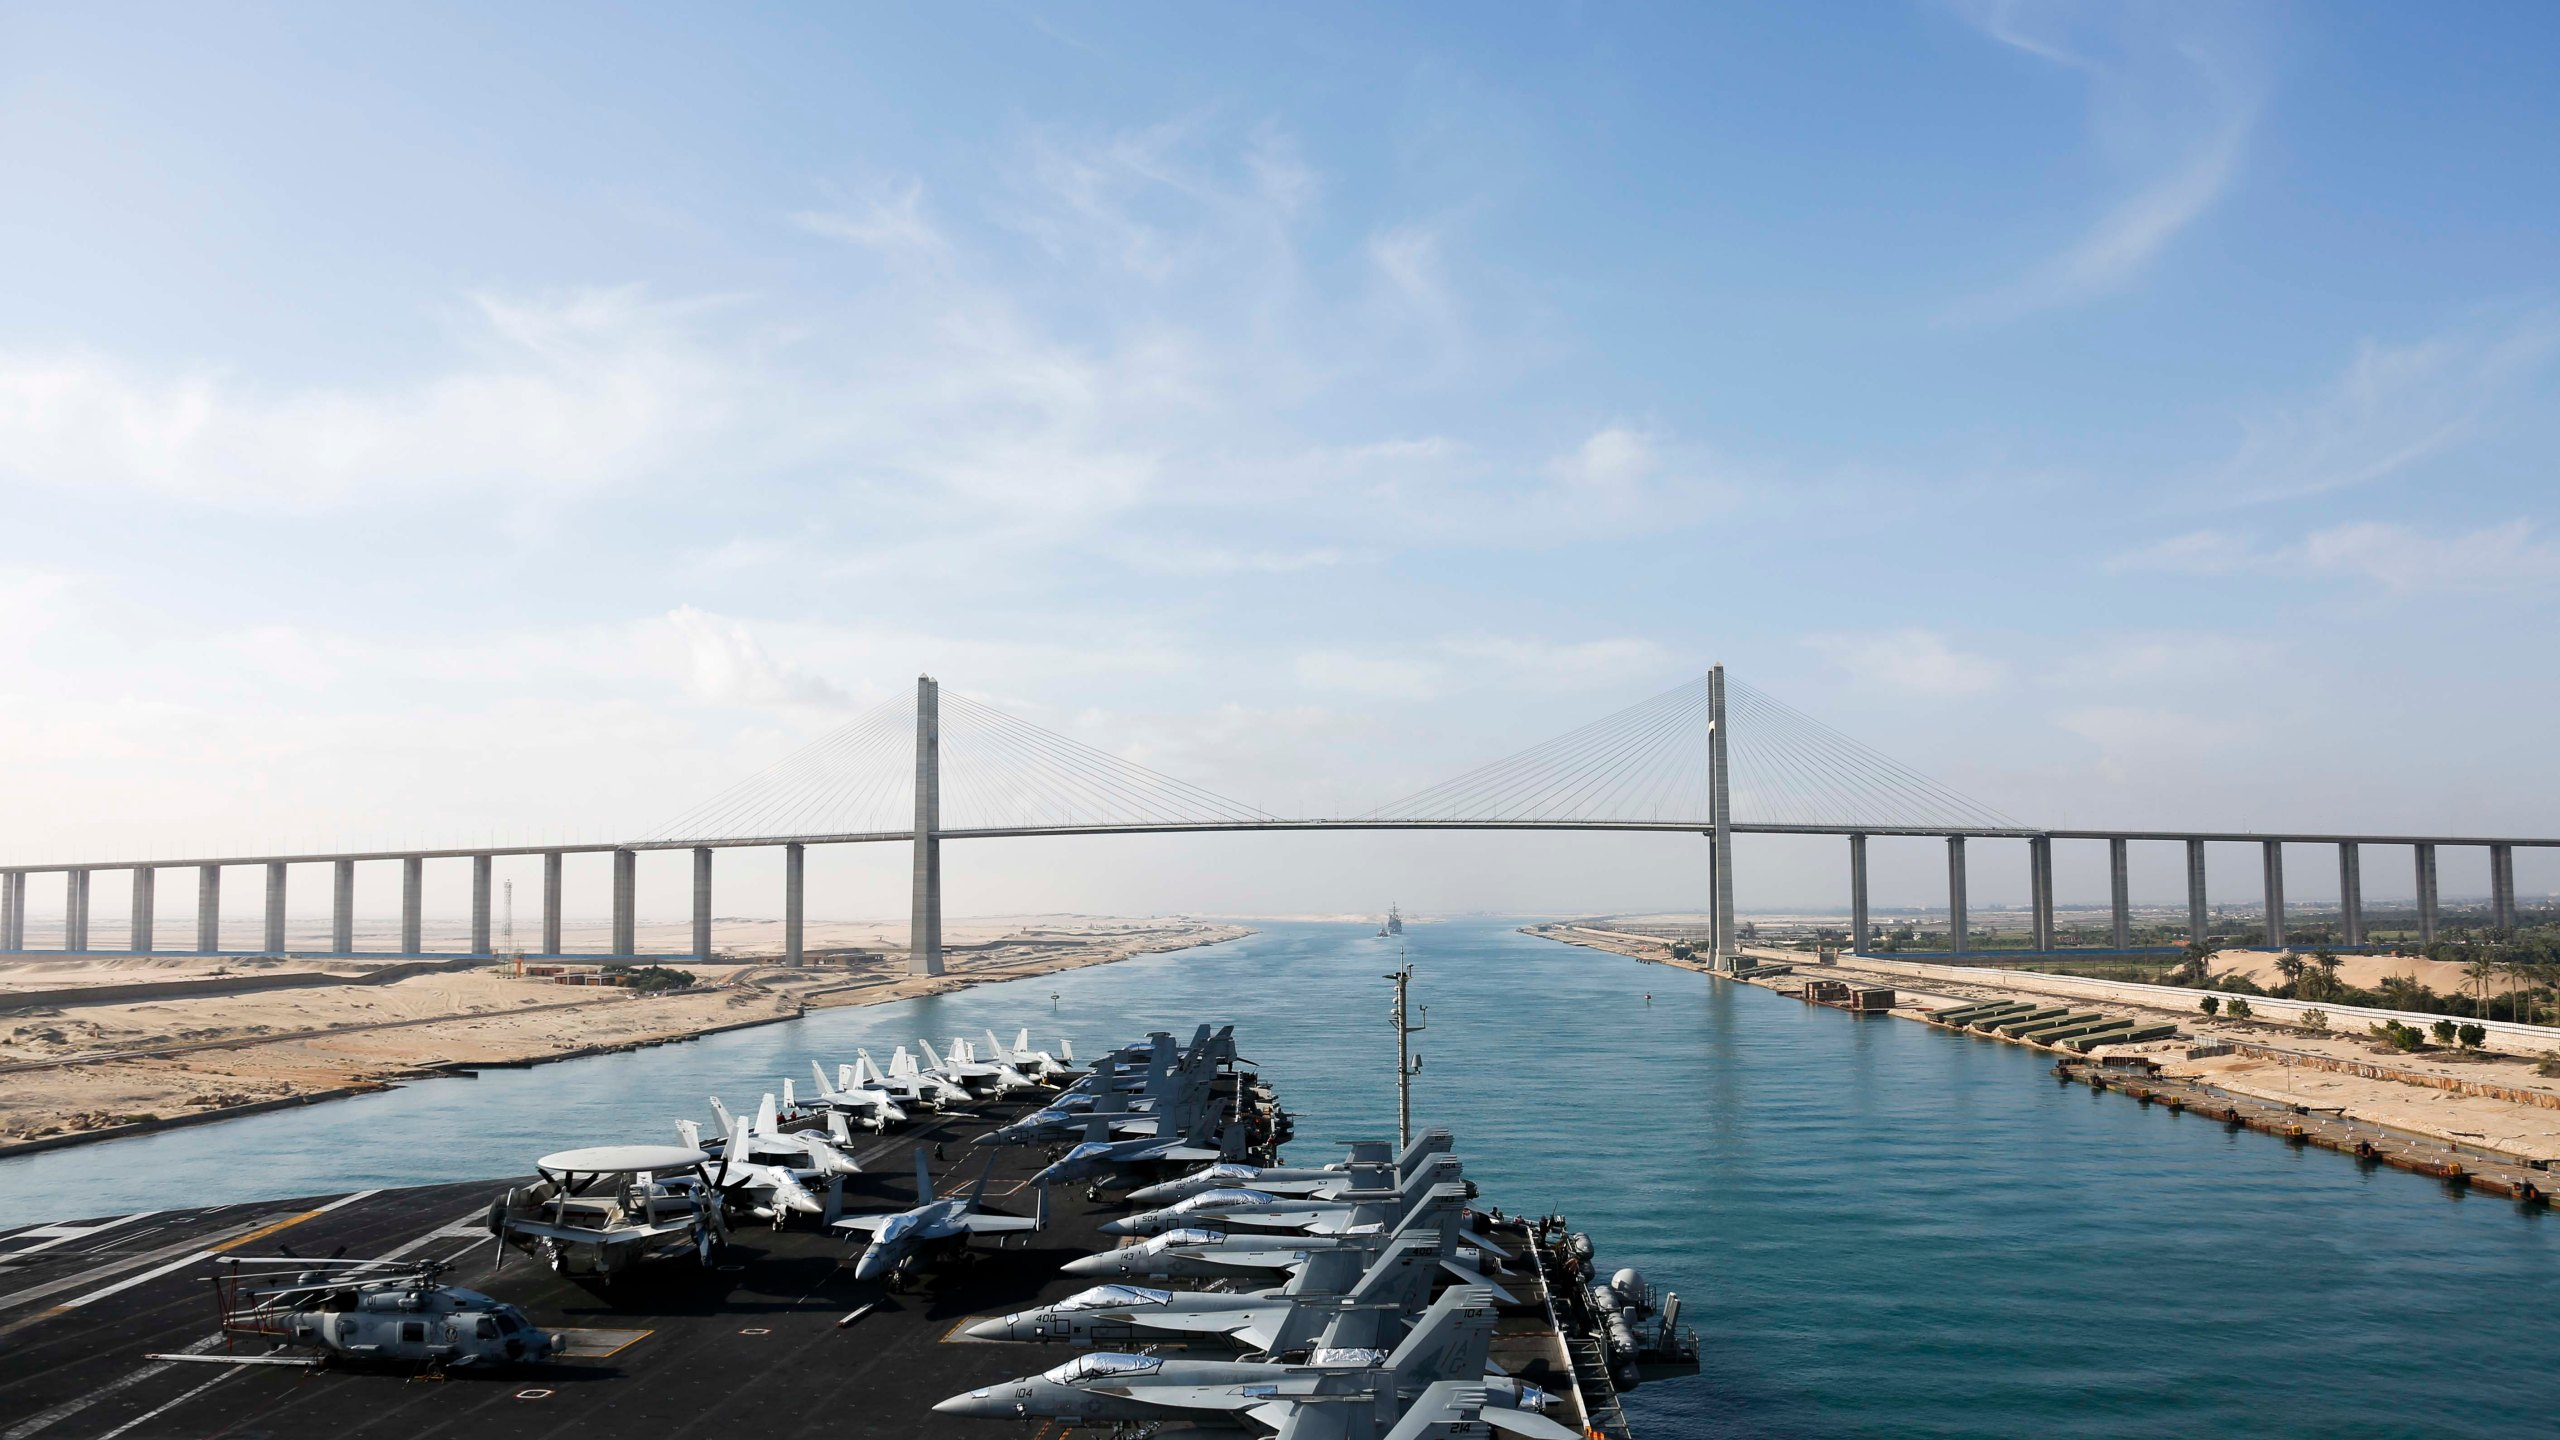 In this May 9, 2019 photo released by the U.S. Navy, the Nimitz-class aircraft carrier USS Abraham Lincoln transits the Suez Canal in Egypt. The aircraft carrier and its strike group are deploying to the Persian Gulf on orders from the White House to respond to an unspecified threat from Iran.